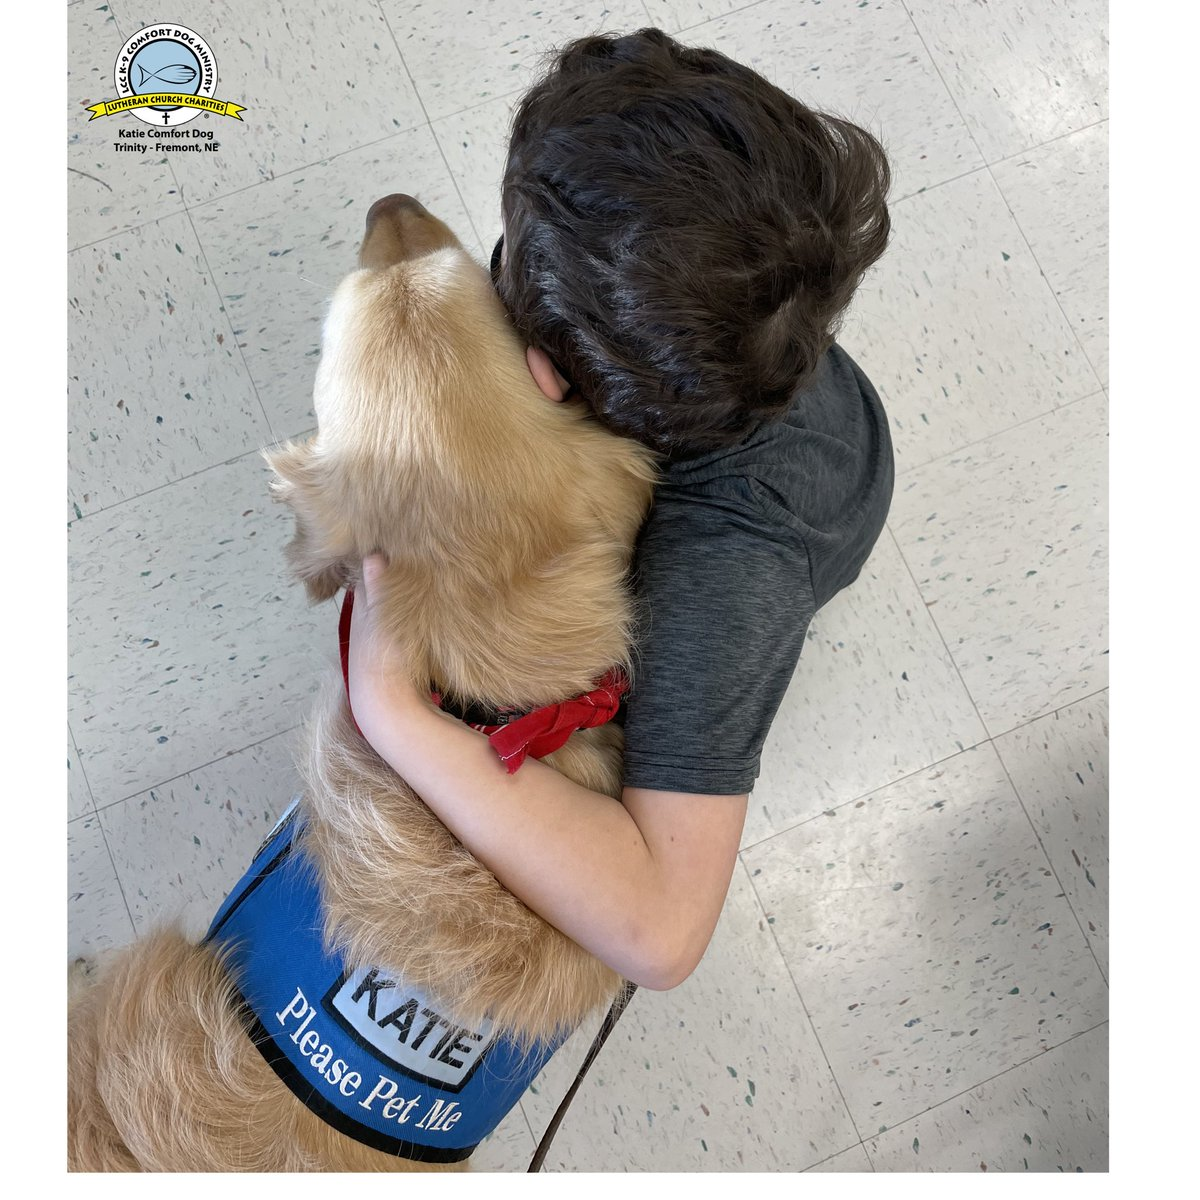 @K9ComfortDogs It's Friday my wonderful friends!! Let the stress of the week go & ENJOY the weekend!   Hugs and love ❤️🐾❤️  #fridayfeeling #goldenretriever #comfortdogs #comfortlife #goldenlove #loveinaction #FridayVibes #hugs